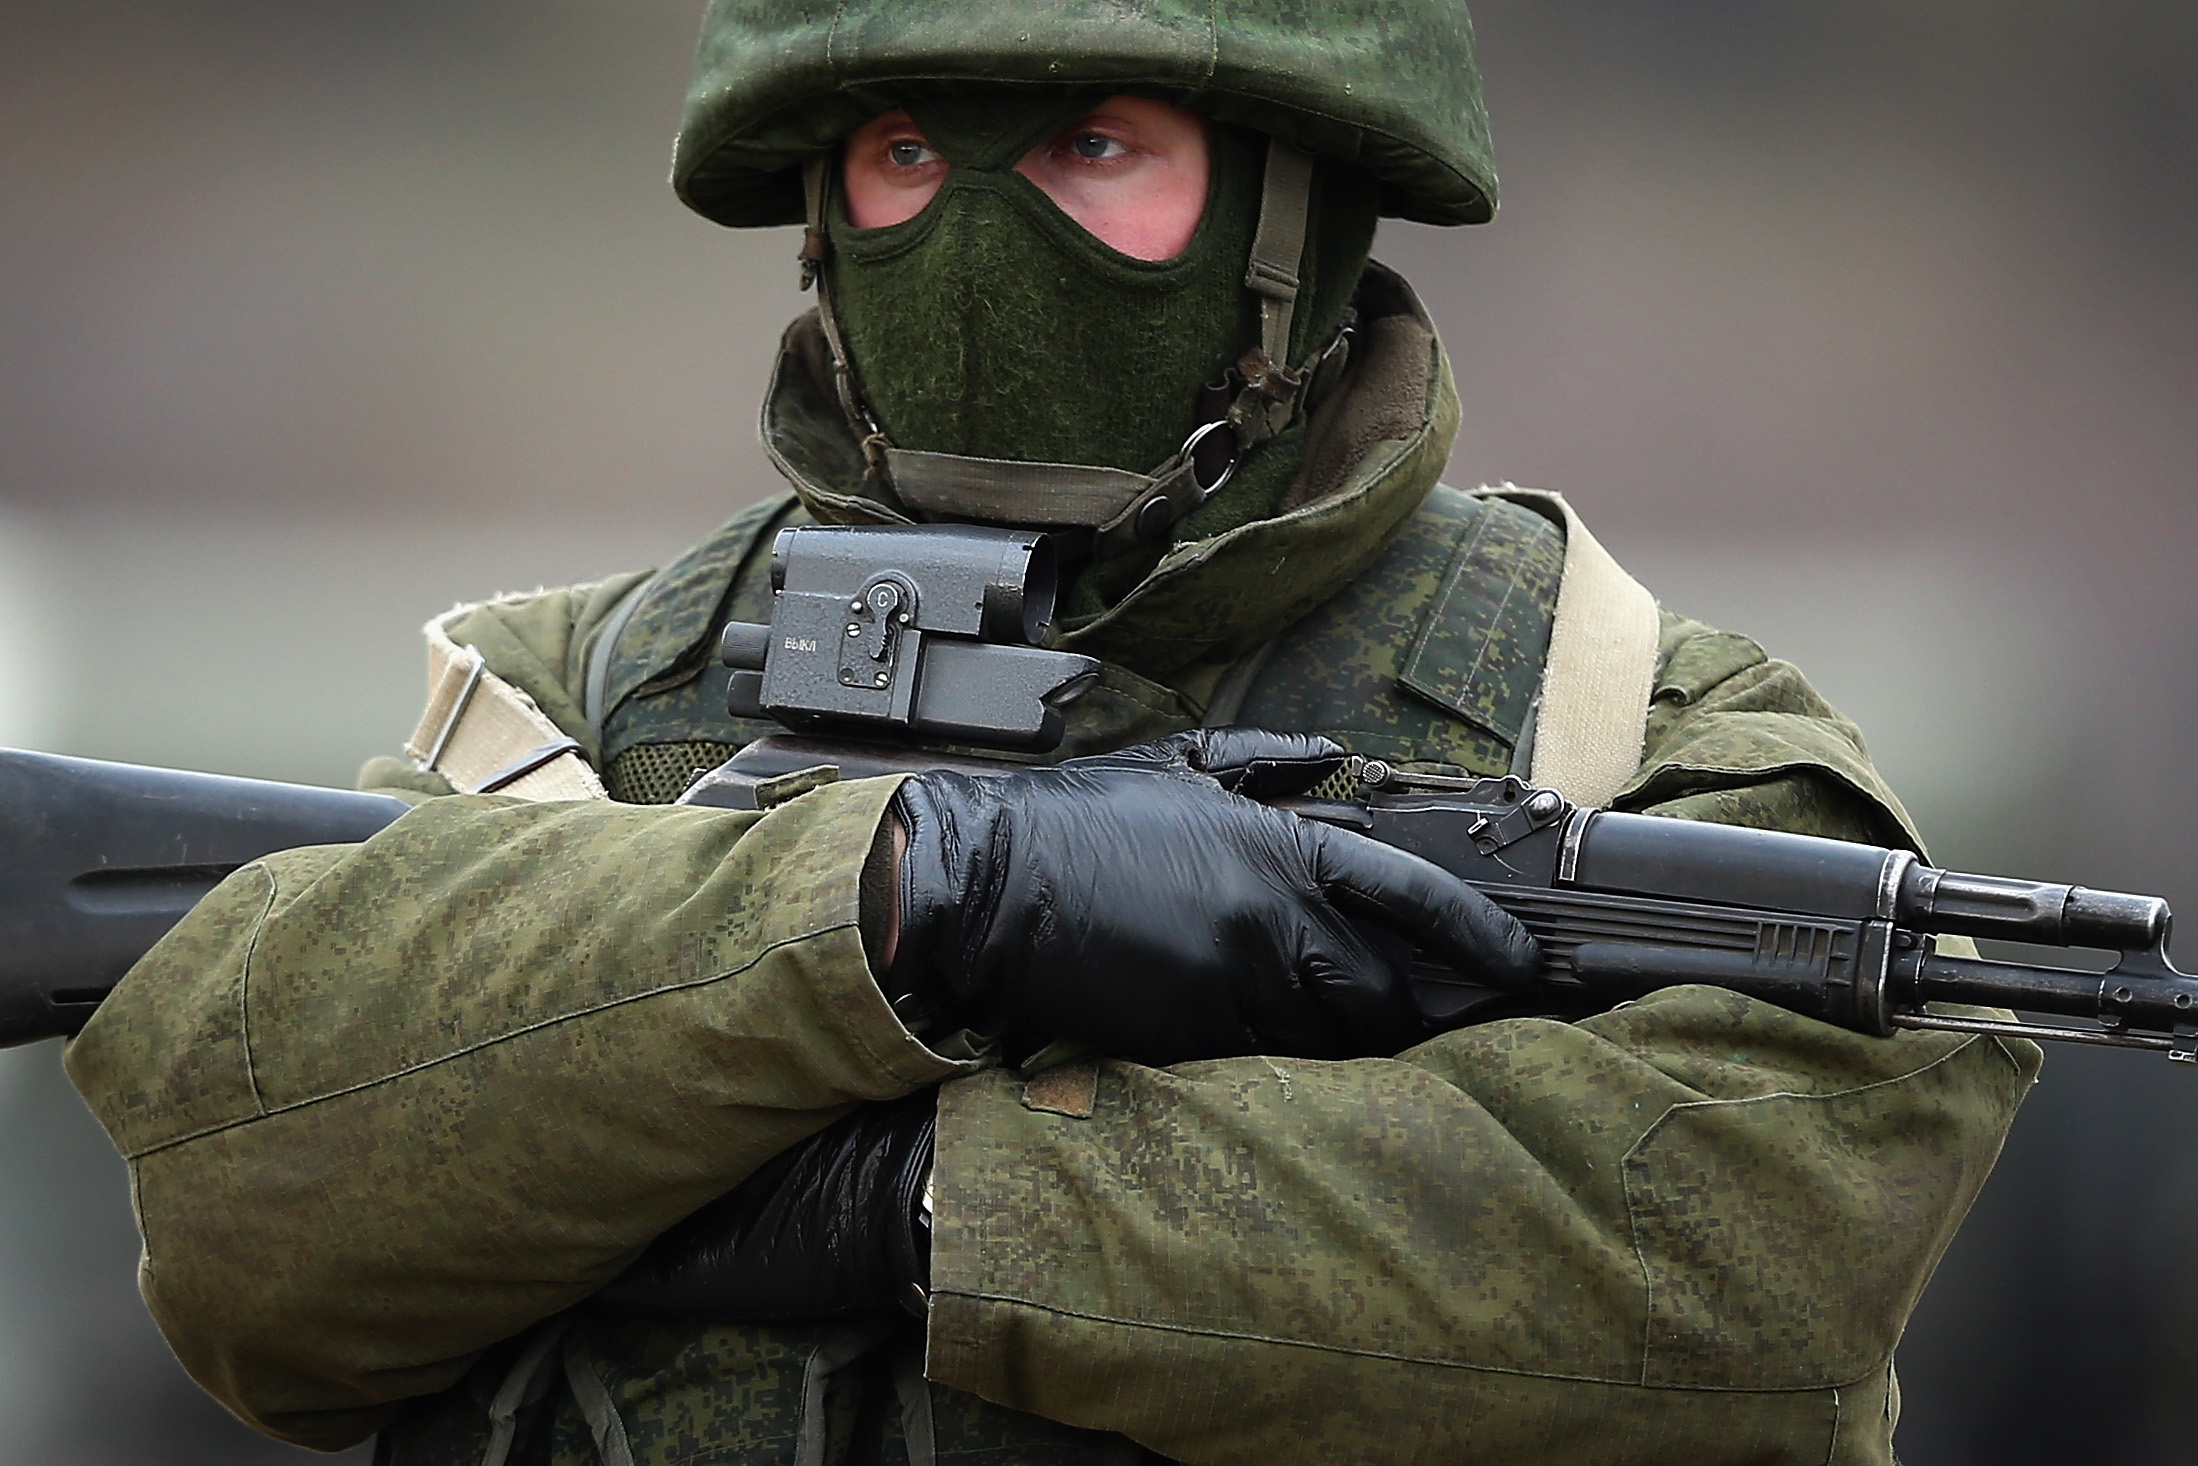 Armed men believed to be Russian military patrol outside a Ukrainian military base in Simferopol, Ukraine, on March 12, 2014. (Dan Kitwood/Getty Images)